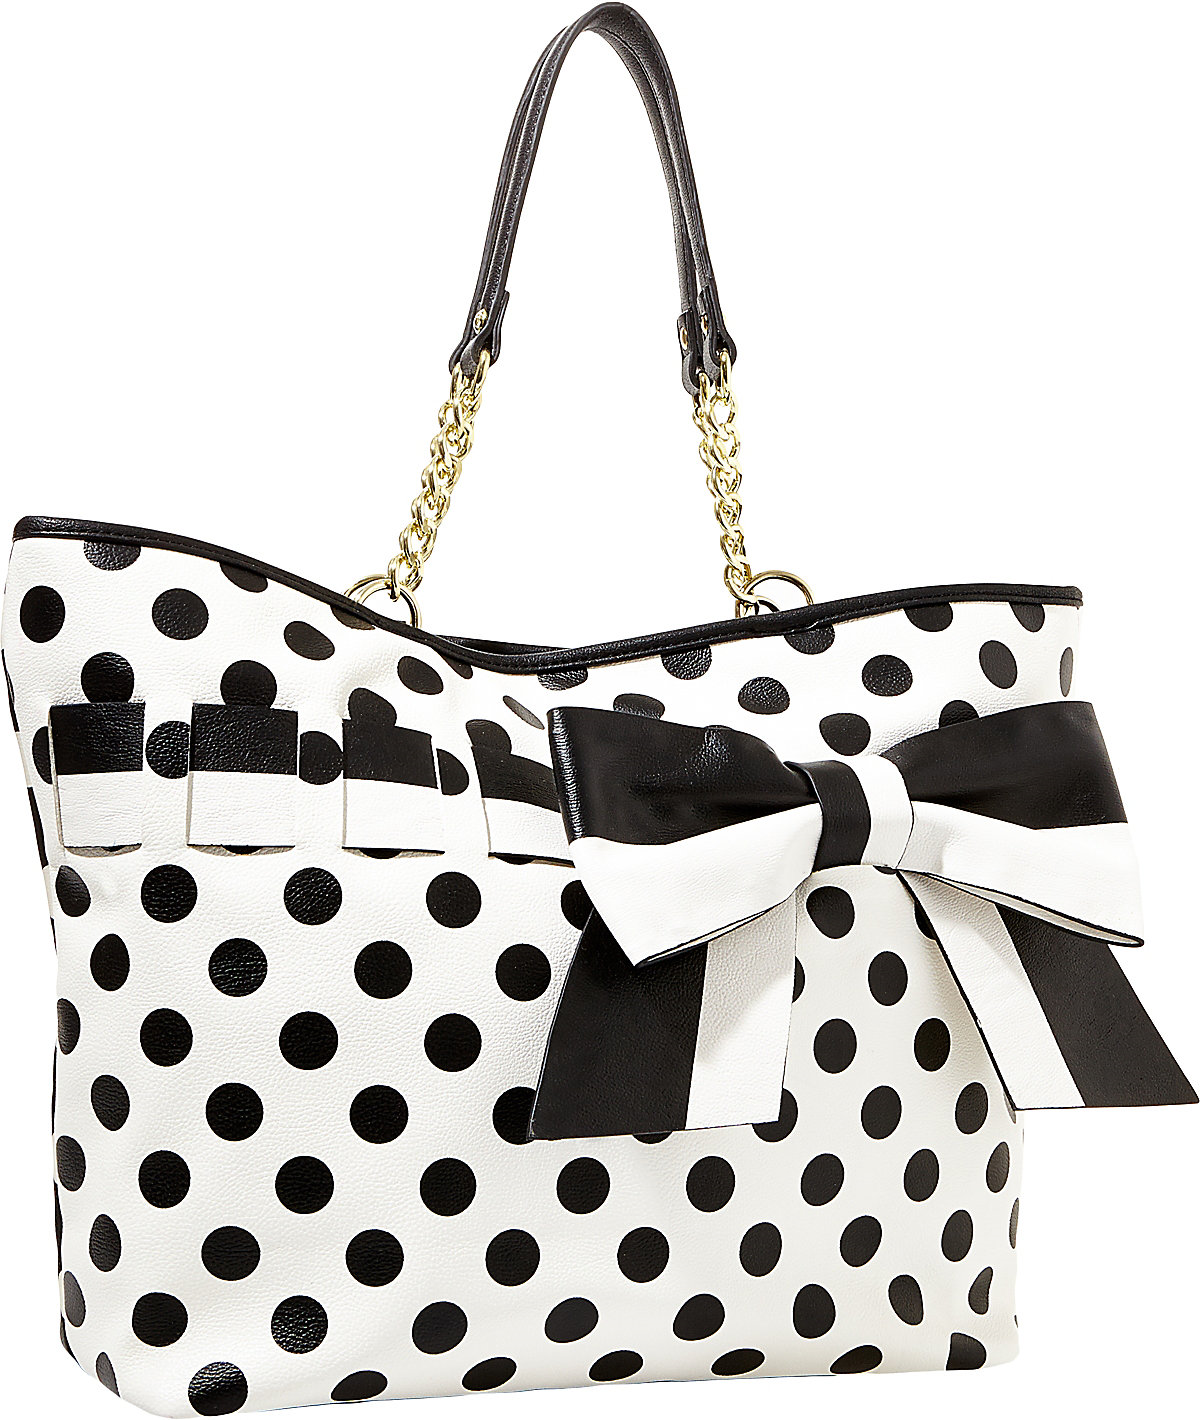 betsey johnson black gift me baby tote betsey